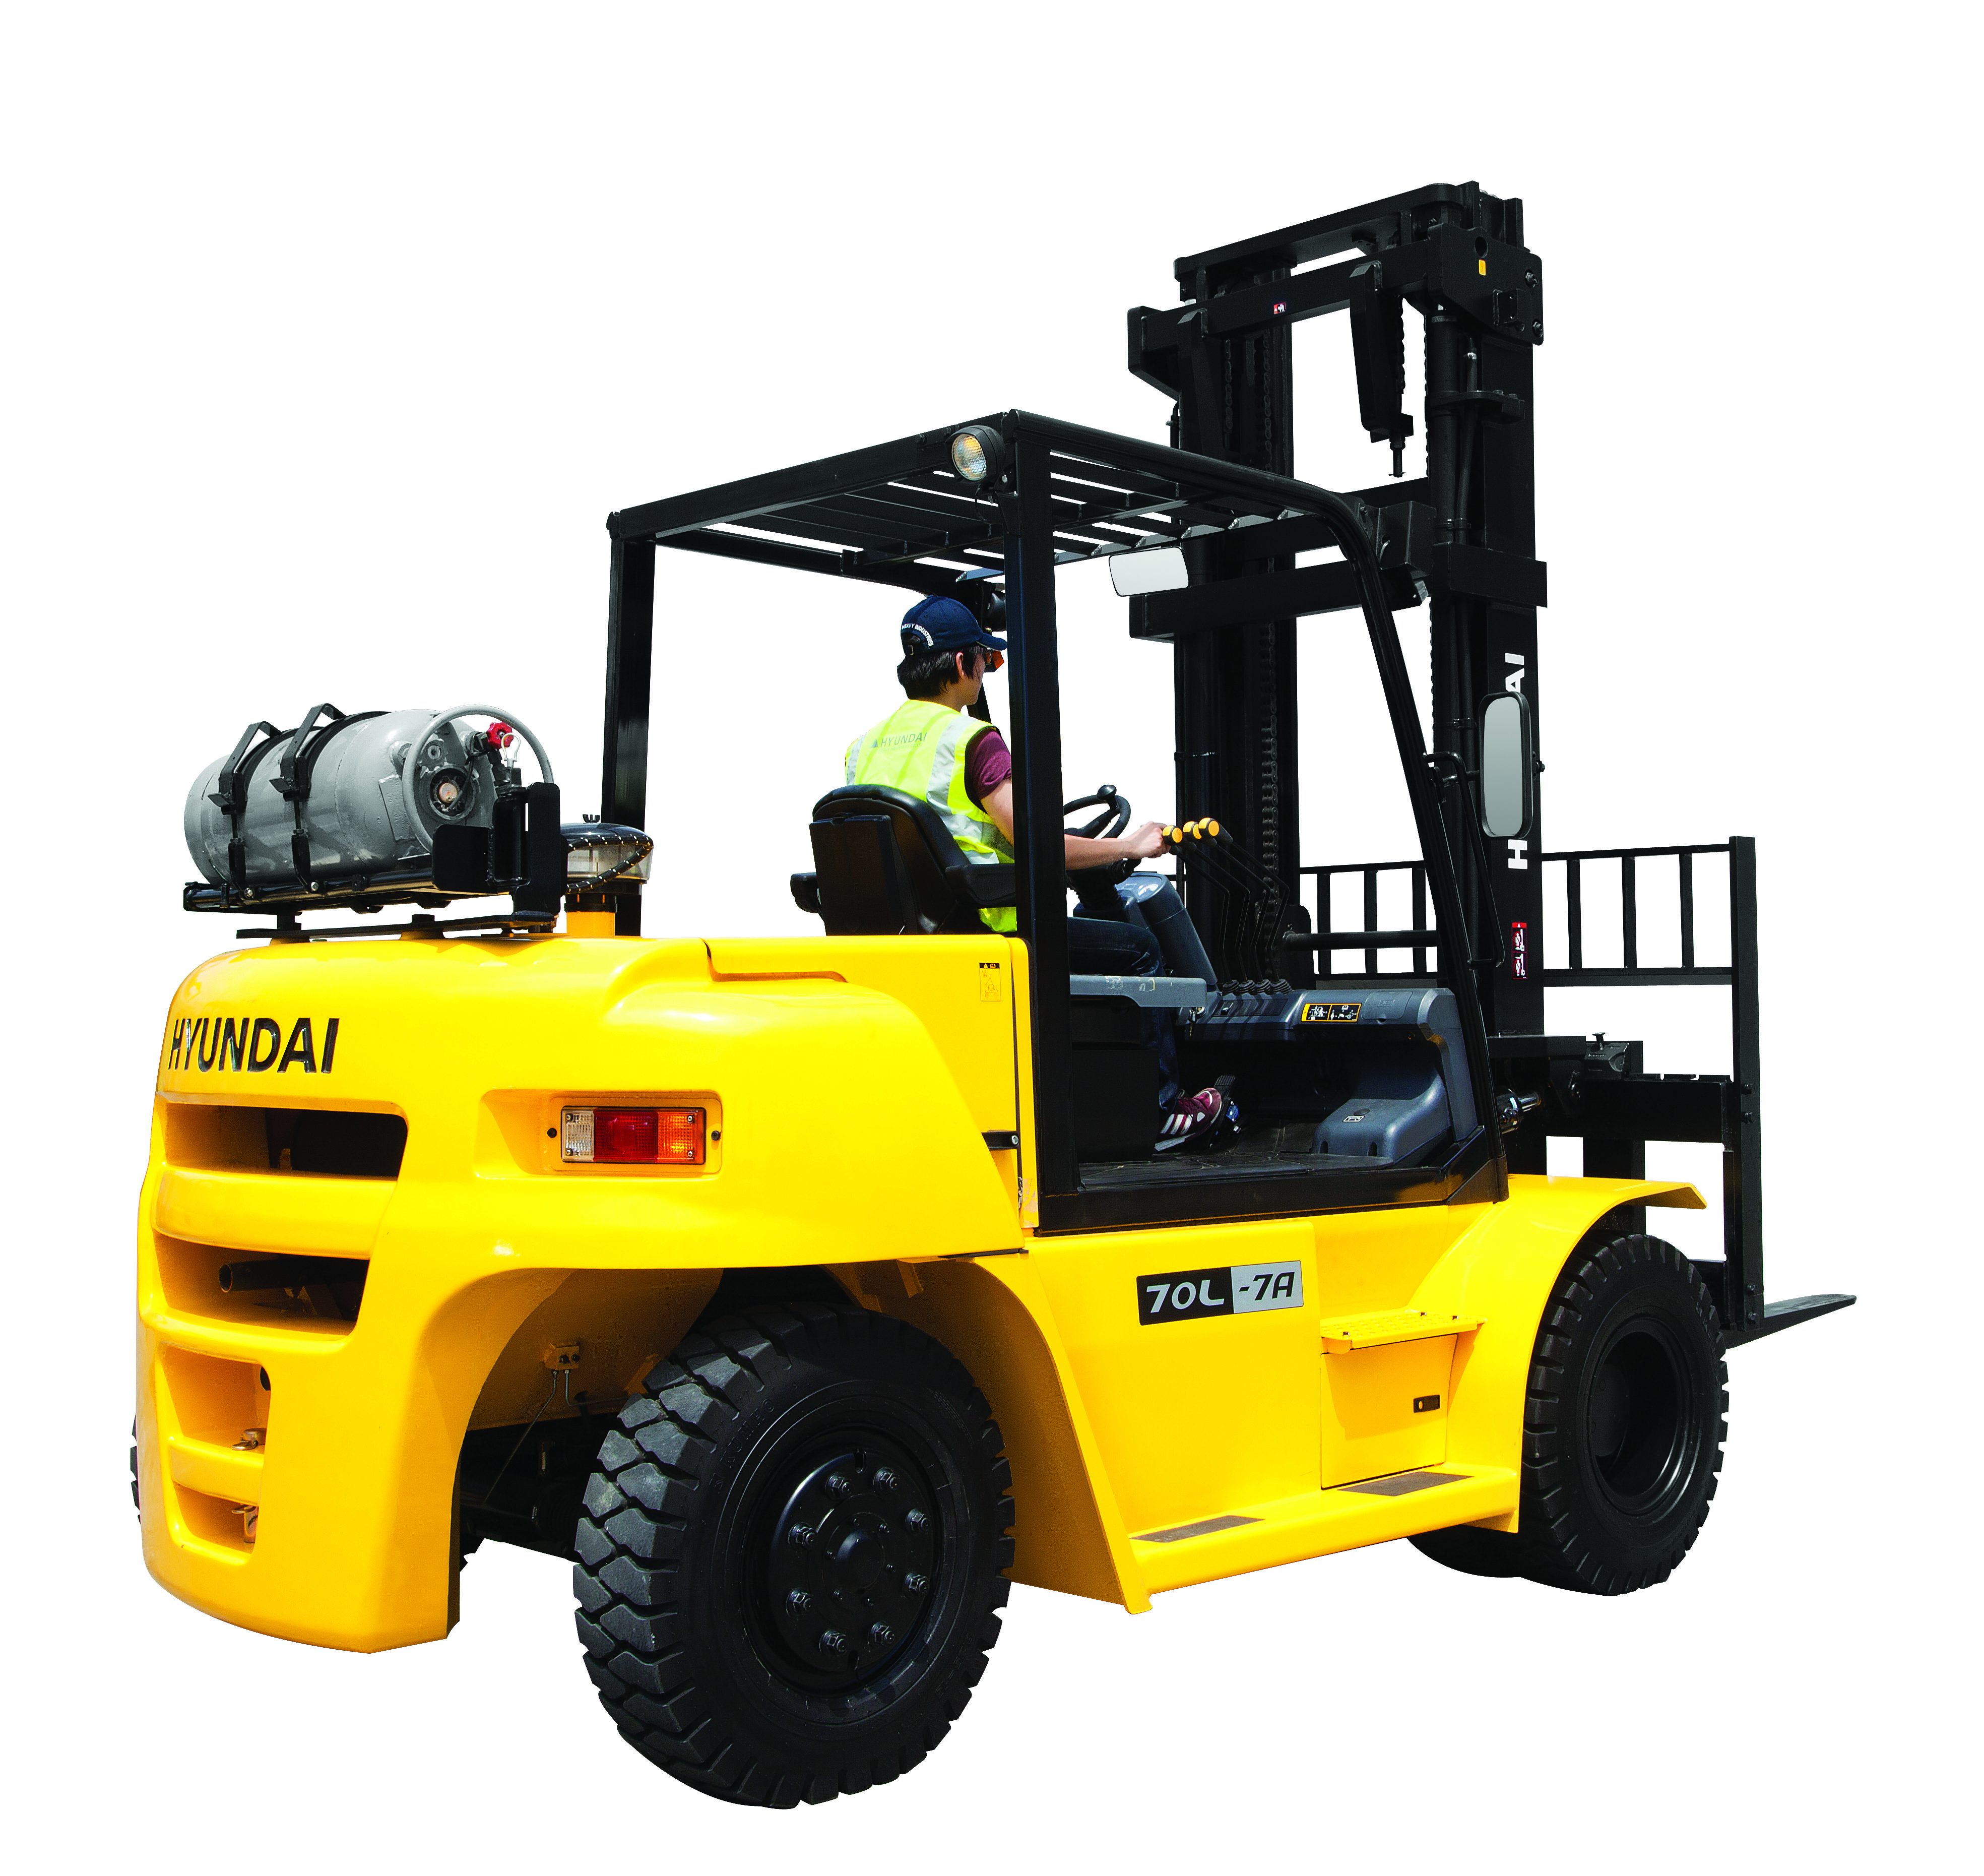 Click on image to download hyundai 60l 7a 70l 7a forklift truck click on image to download hyundai 60l 7a 70l 7a forklift truck service repair fandeluxe Choice Image